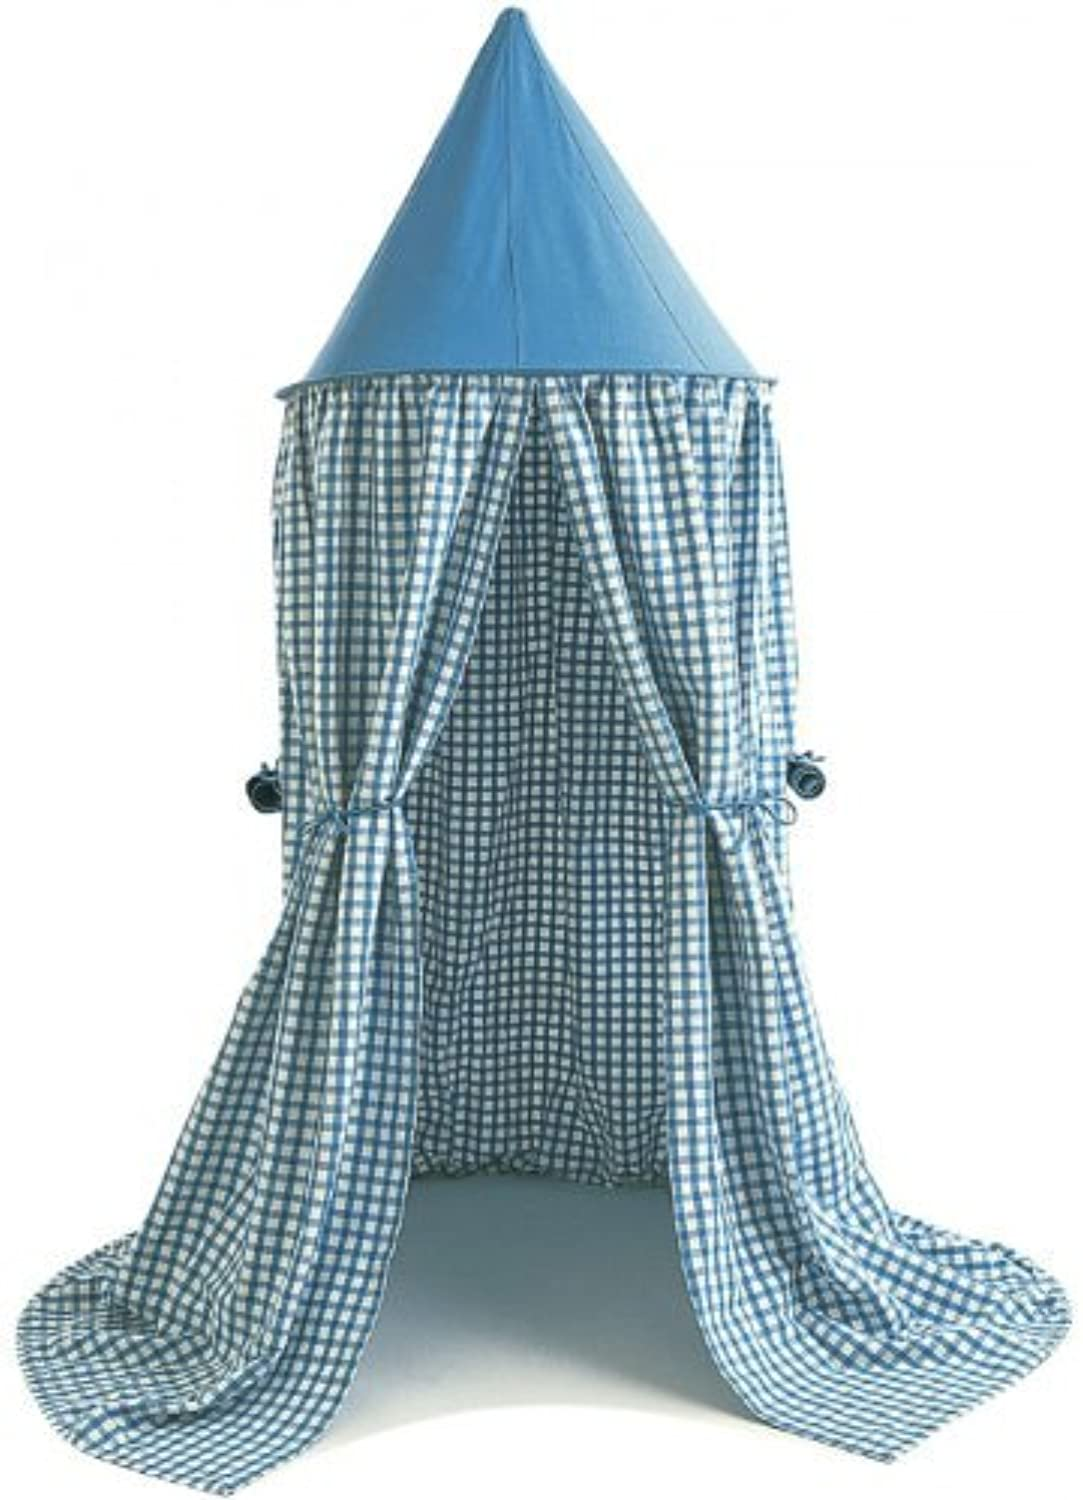 Win Green HANBL Hanging Tent bluee Gingham by Win Green